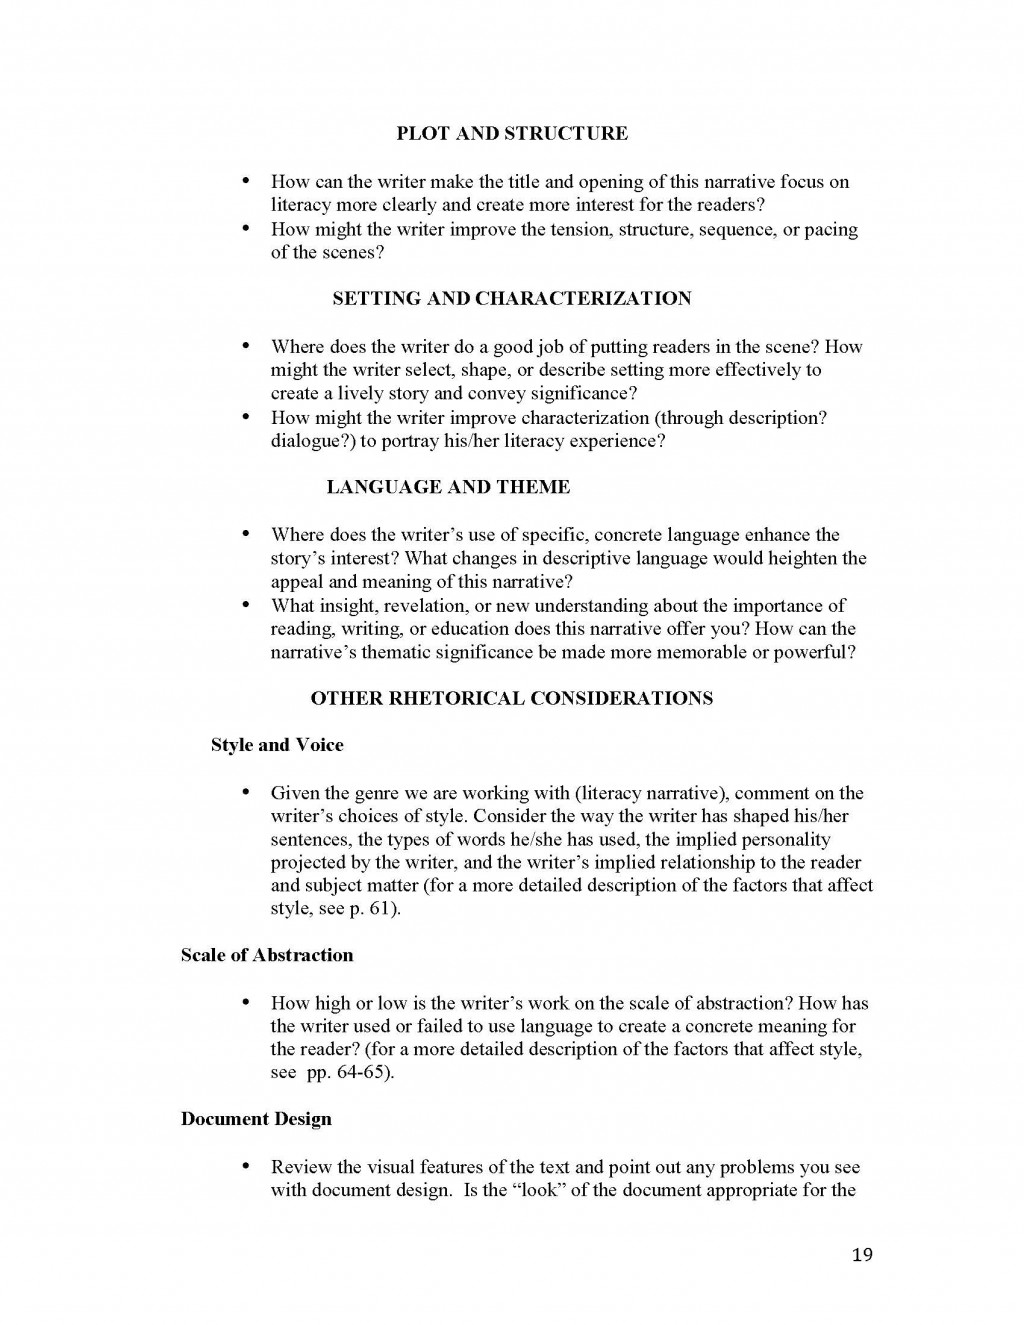 023 How To Start Off An Argumentative Essay Example Unit 1 Literacy Narrative Instructor Copy Page 19 Striking End Of Examples Large